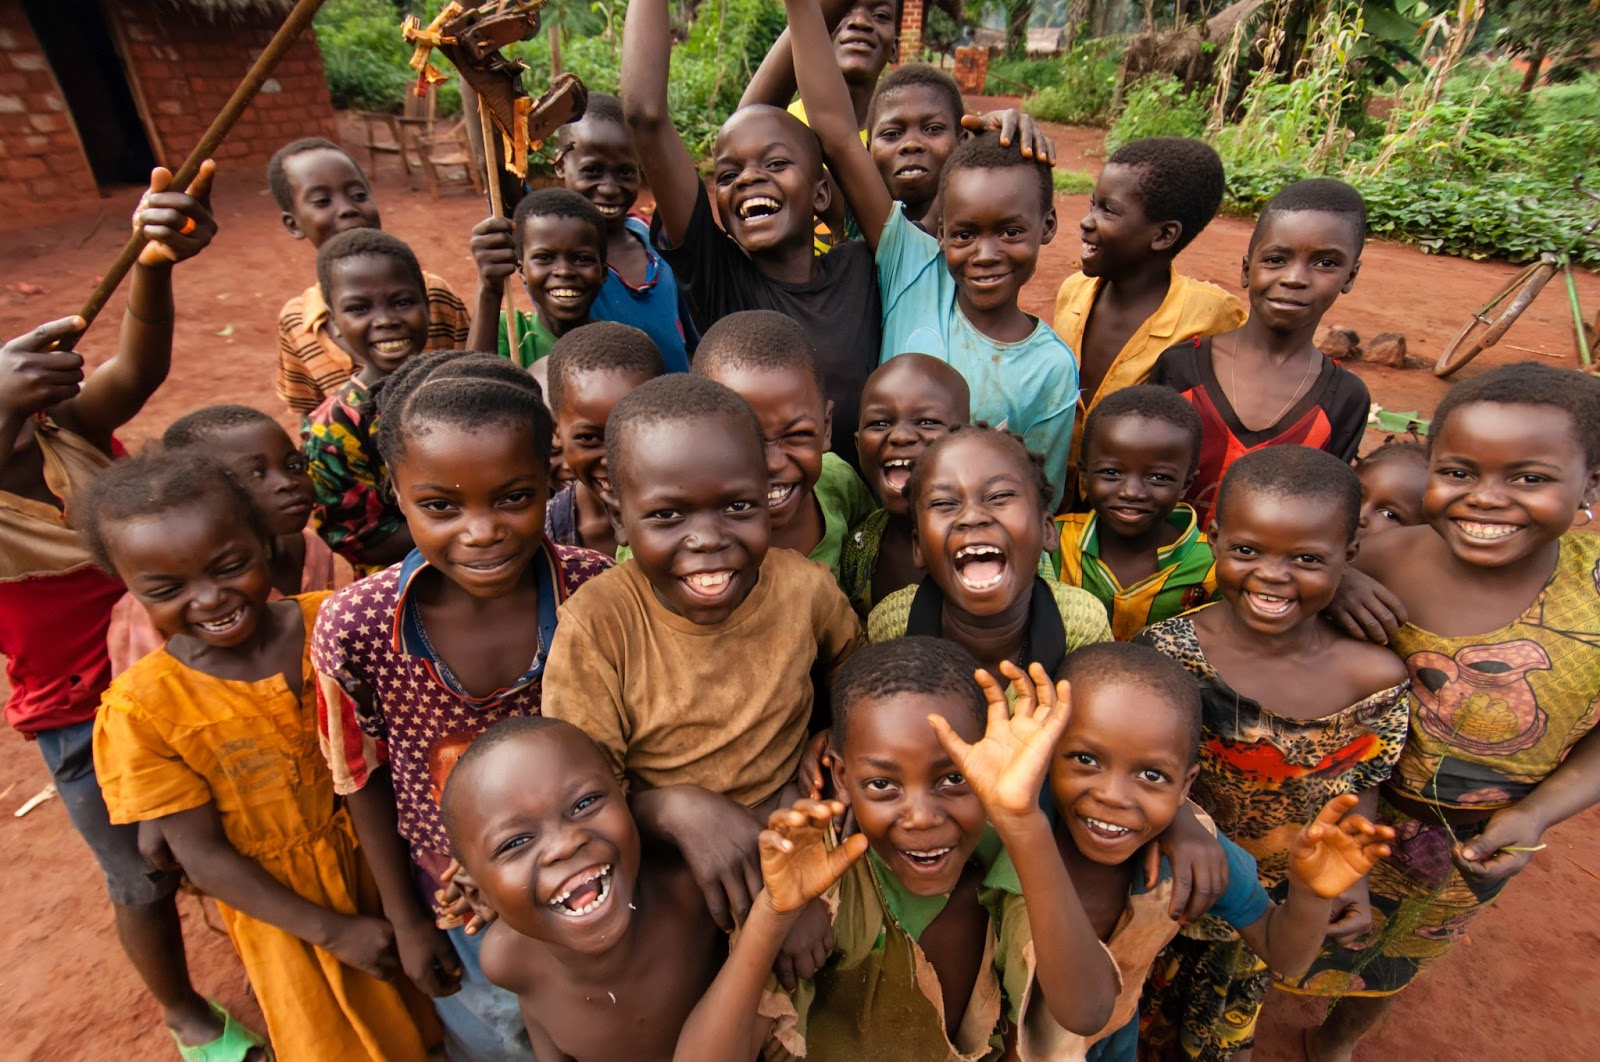 http://africa-facts.org/wp-content/uploads/2015/01/african-kids.jpg